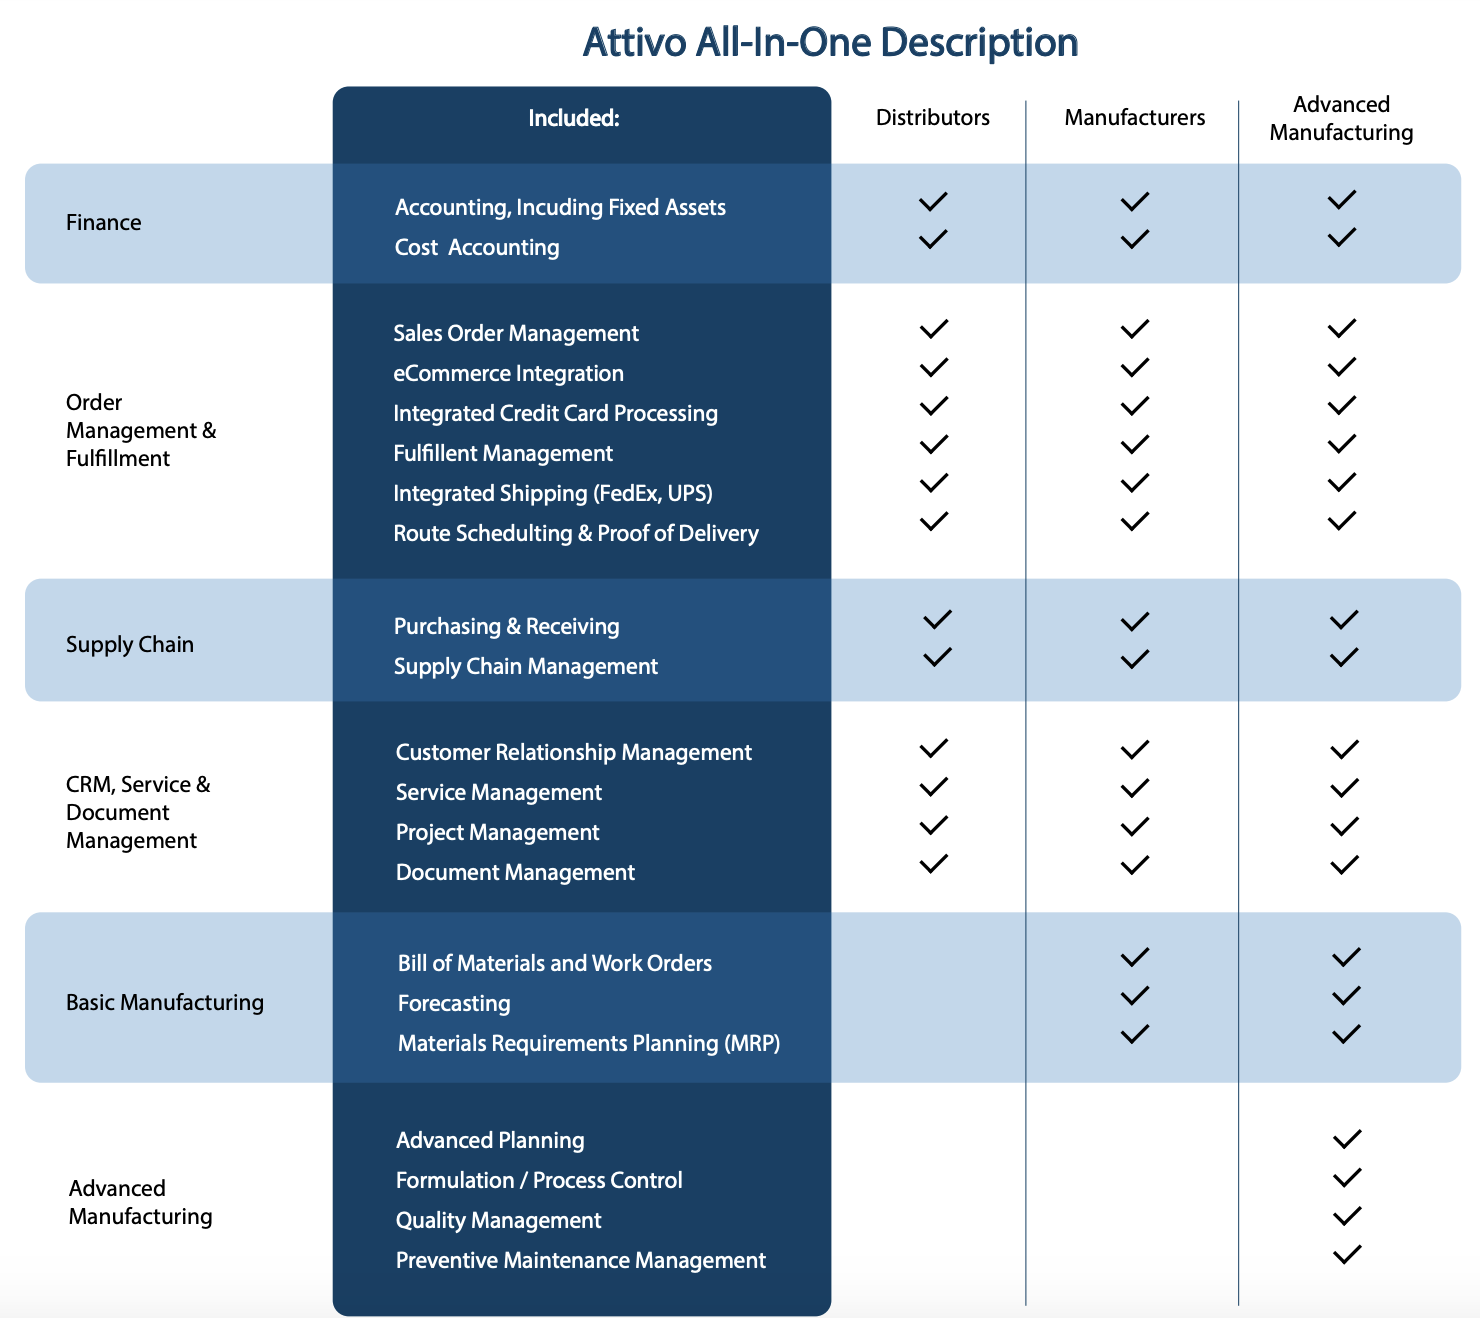 Attivo All-in-One Features